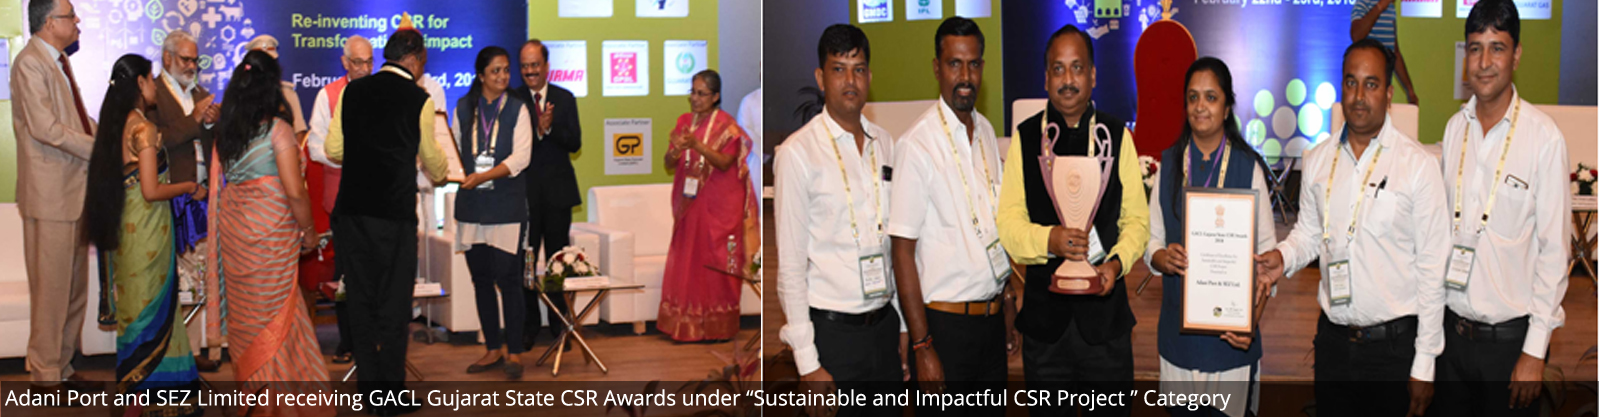 "Adani Port and SEZ Limited receiving GACL Gujarat State CSR Awards under ""Sustainable and Impactful CSR Project "" Category"